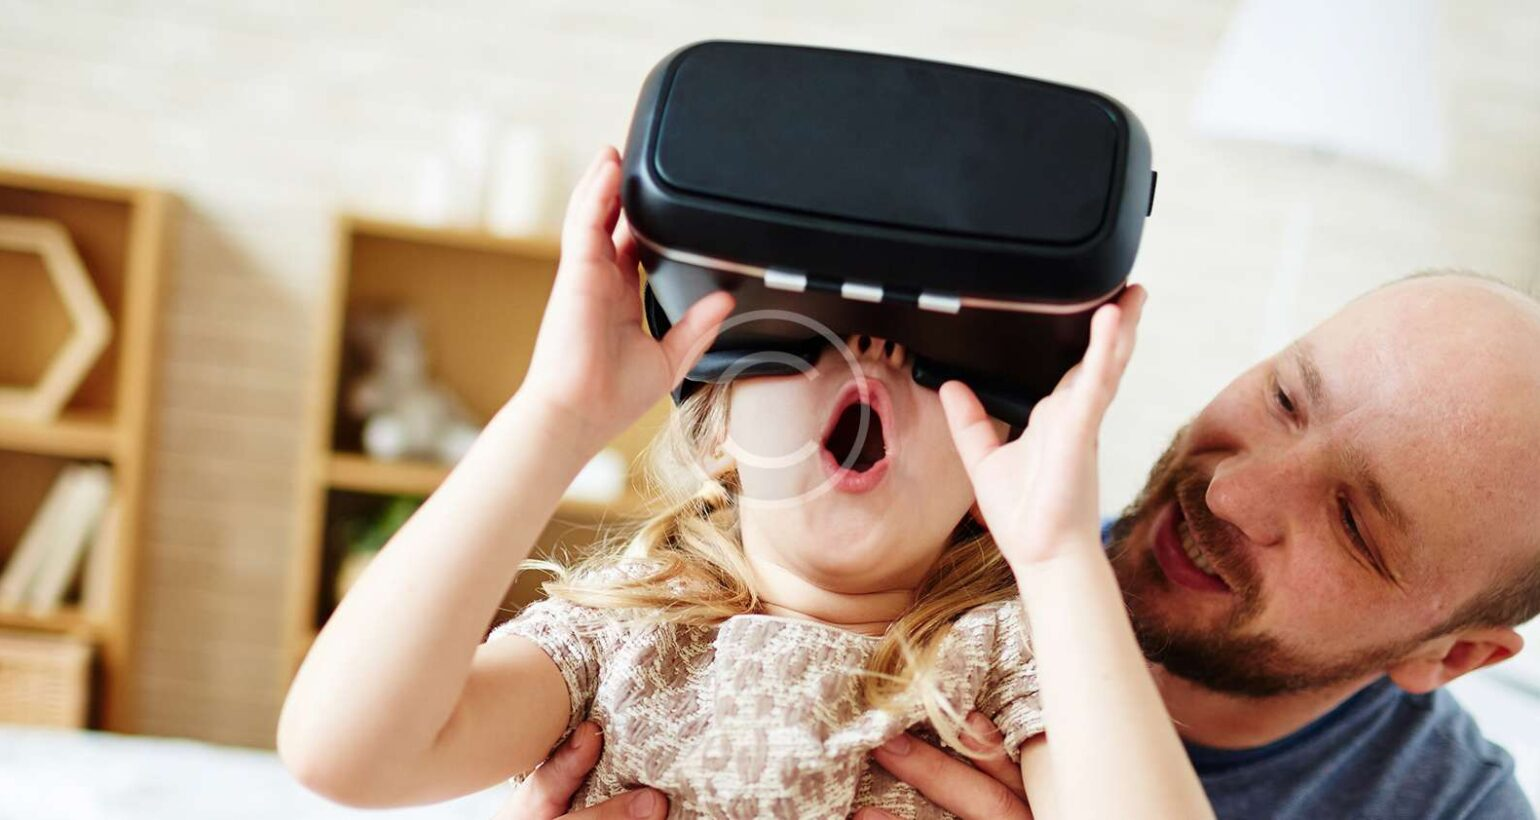 Trend Update: Top Virtual Reality Innovations and Trends